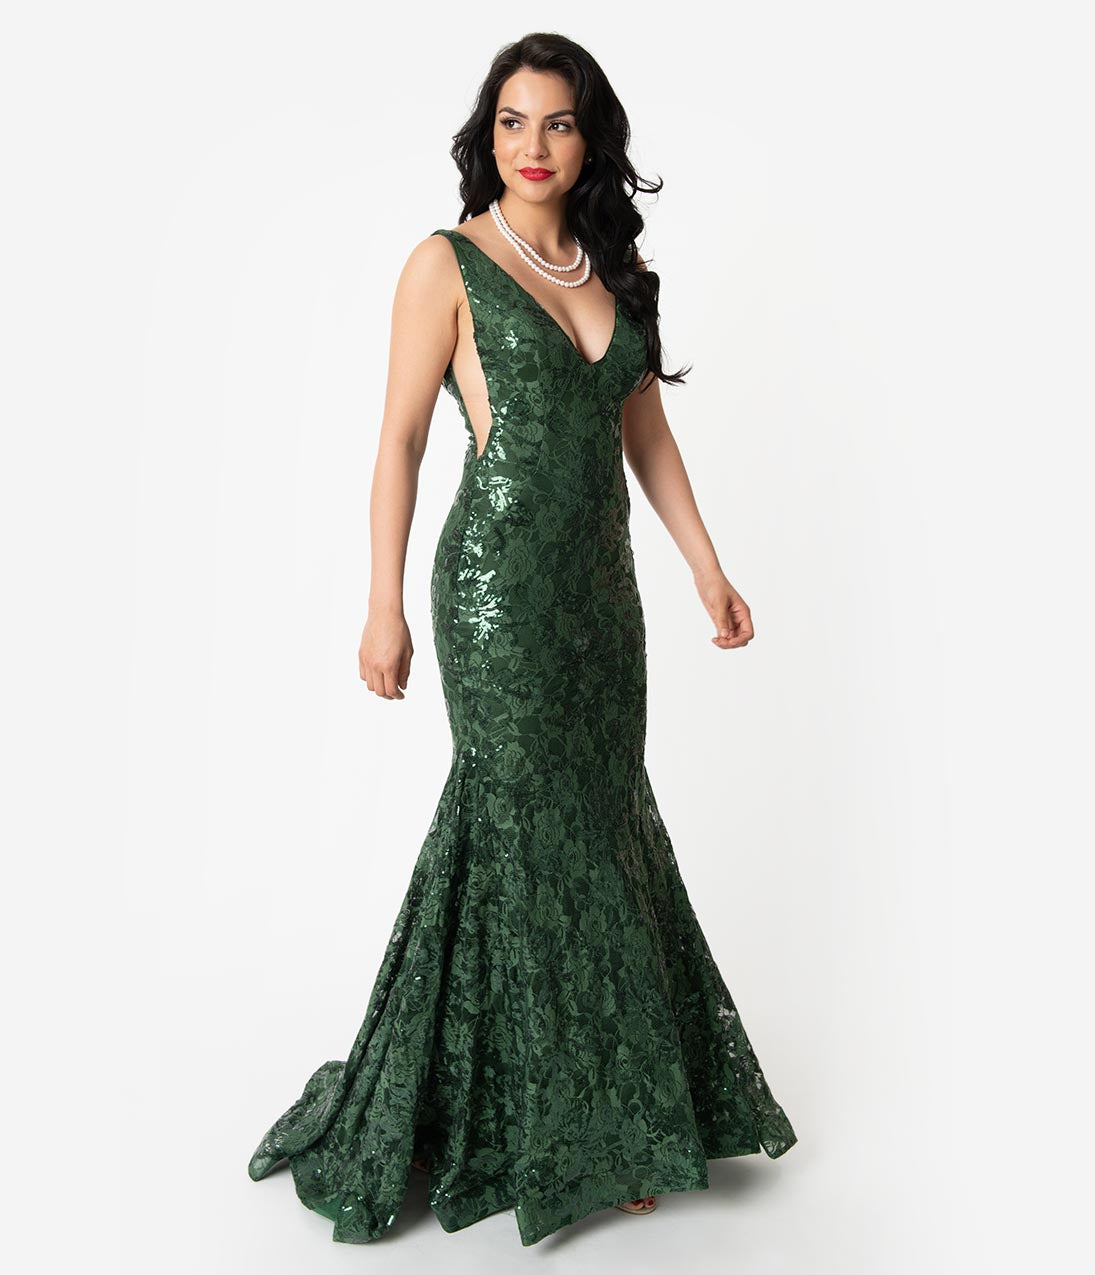 1950s History of Prom, Party, and Formal Dresses Hunter Green Sequin Lace Sexy Mermaid Gown $220.00 AT vintagedancer.com